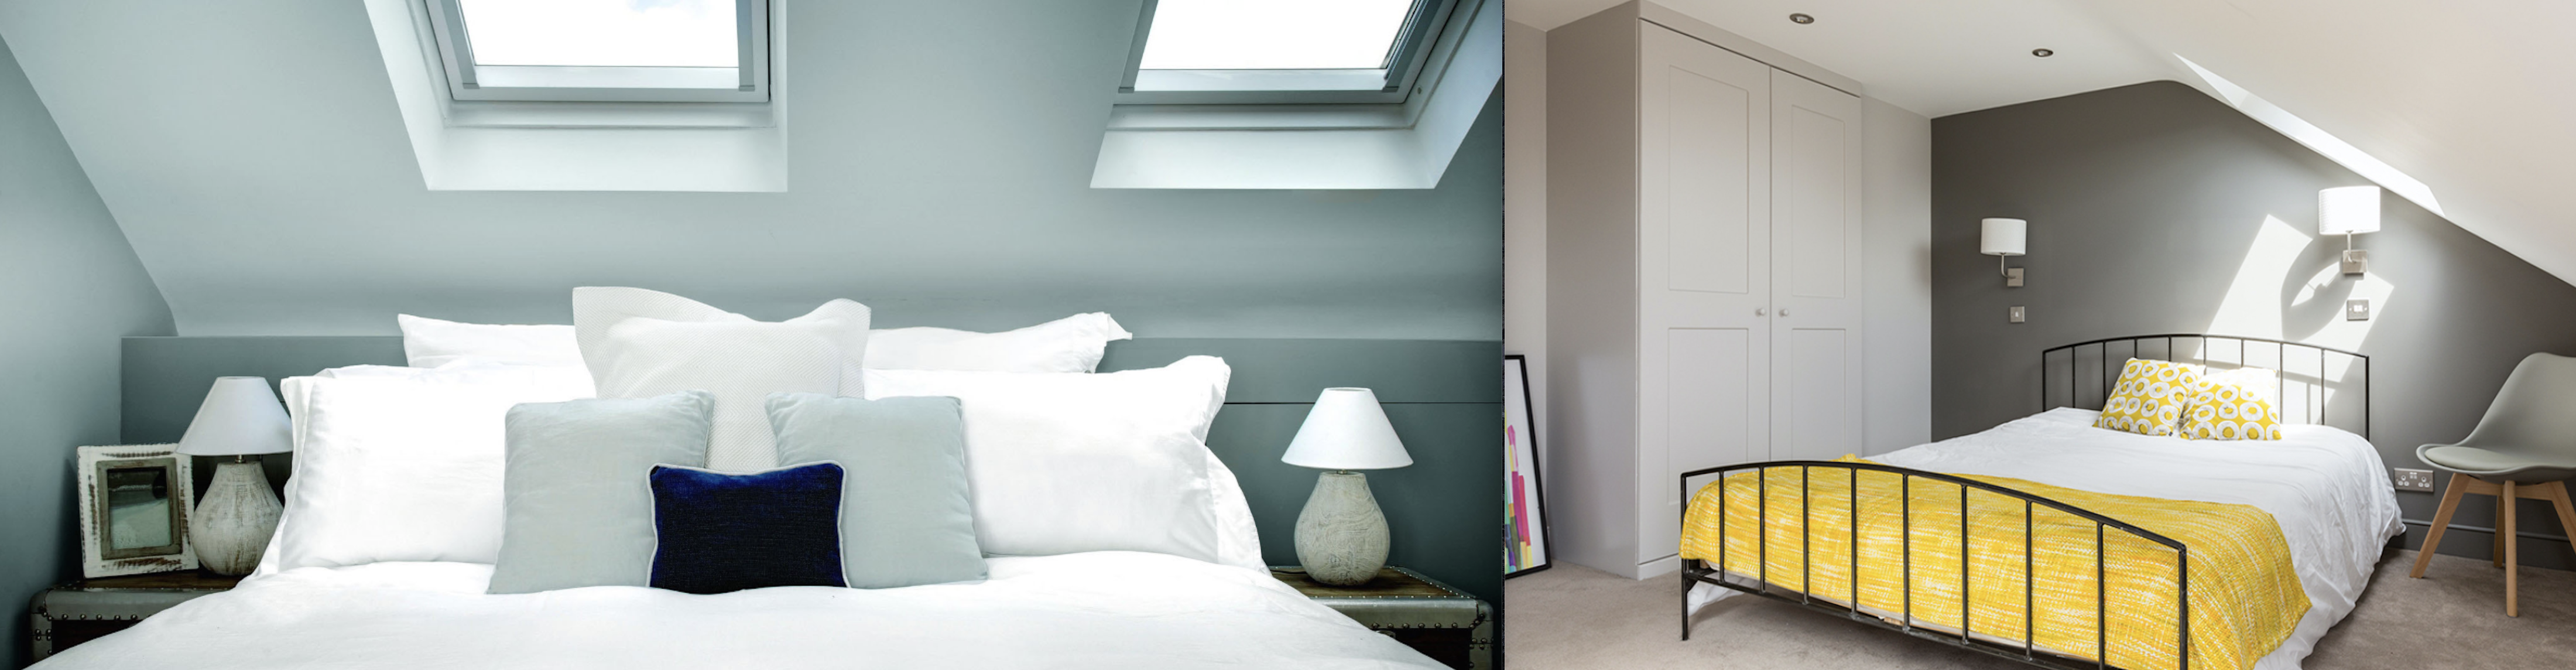 Beautiful Dormer loft conversion in Standish, creating a new master bedroom with private bathroom, walk in wardrobe and stunning new oak staircase with Velux polyurethane SK06 GPU windows.